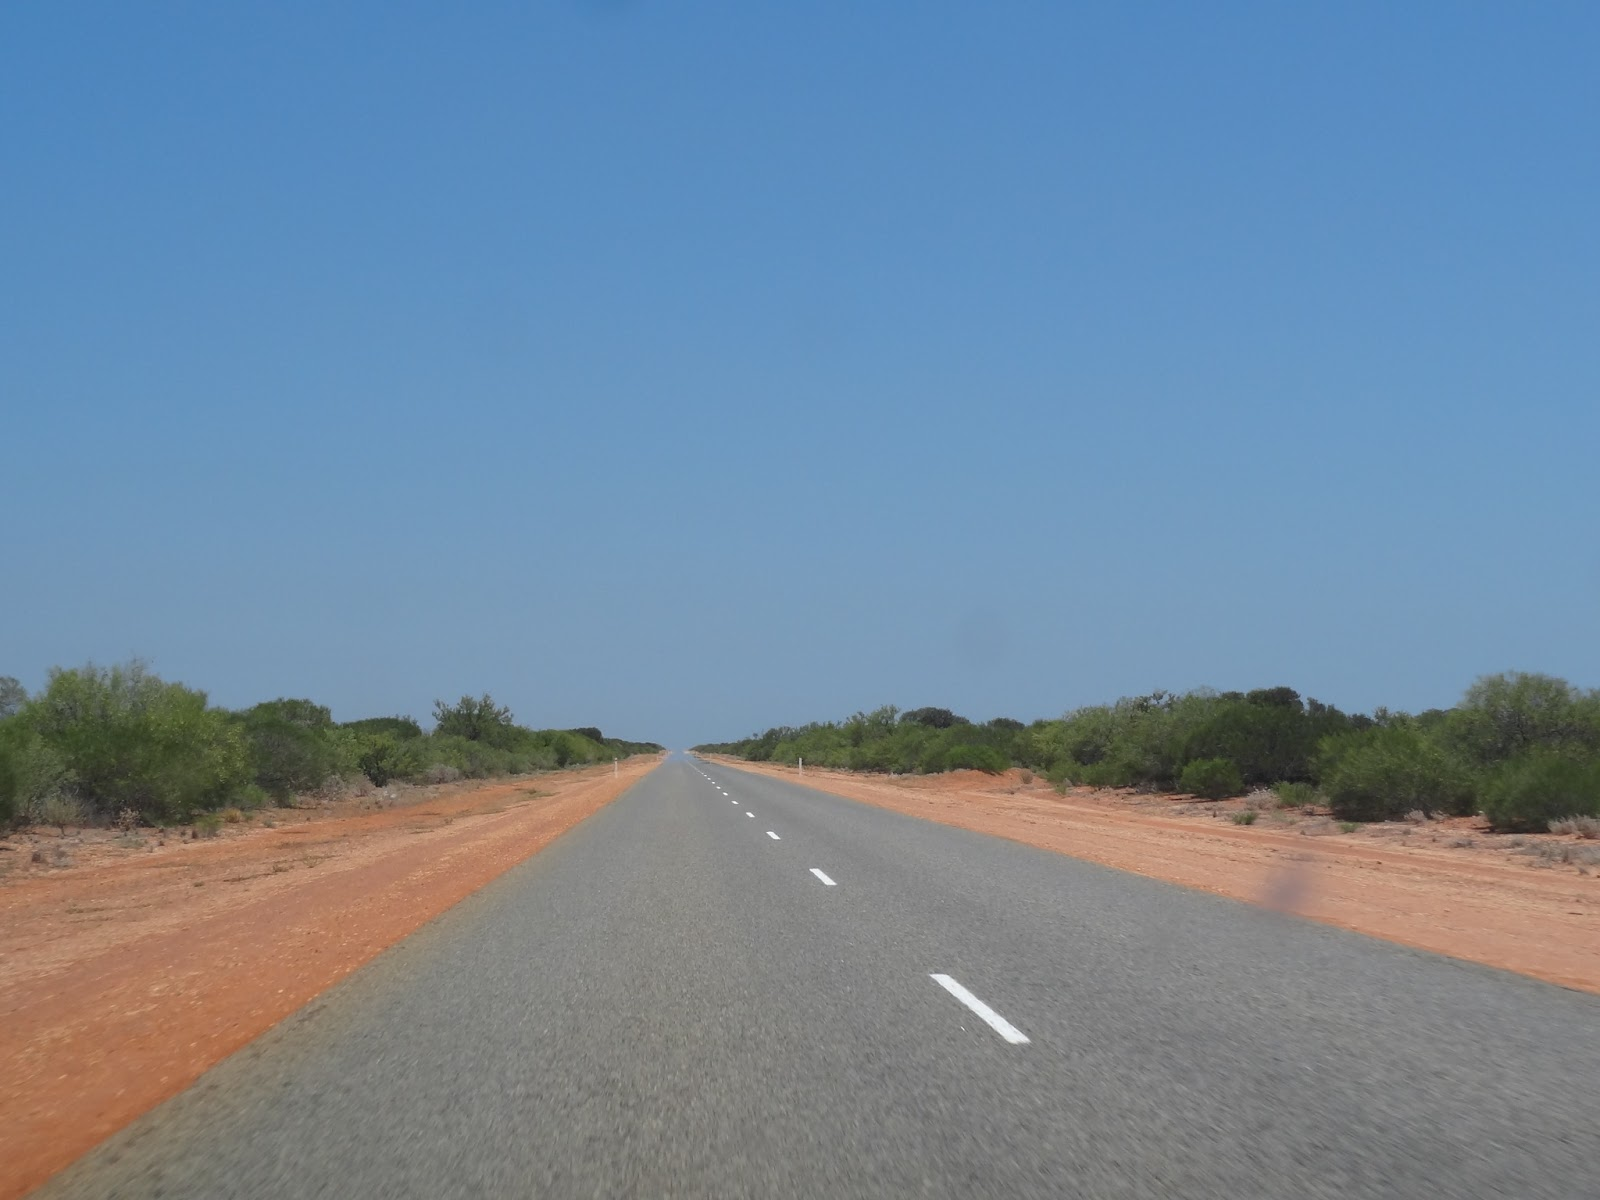 400km of straight road with one town in between